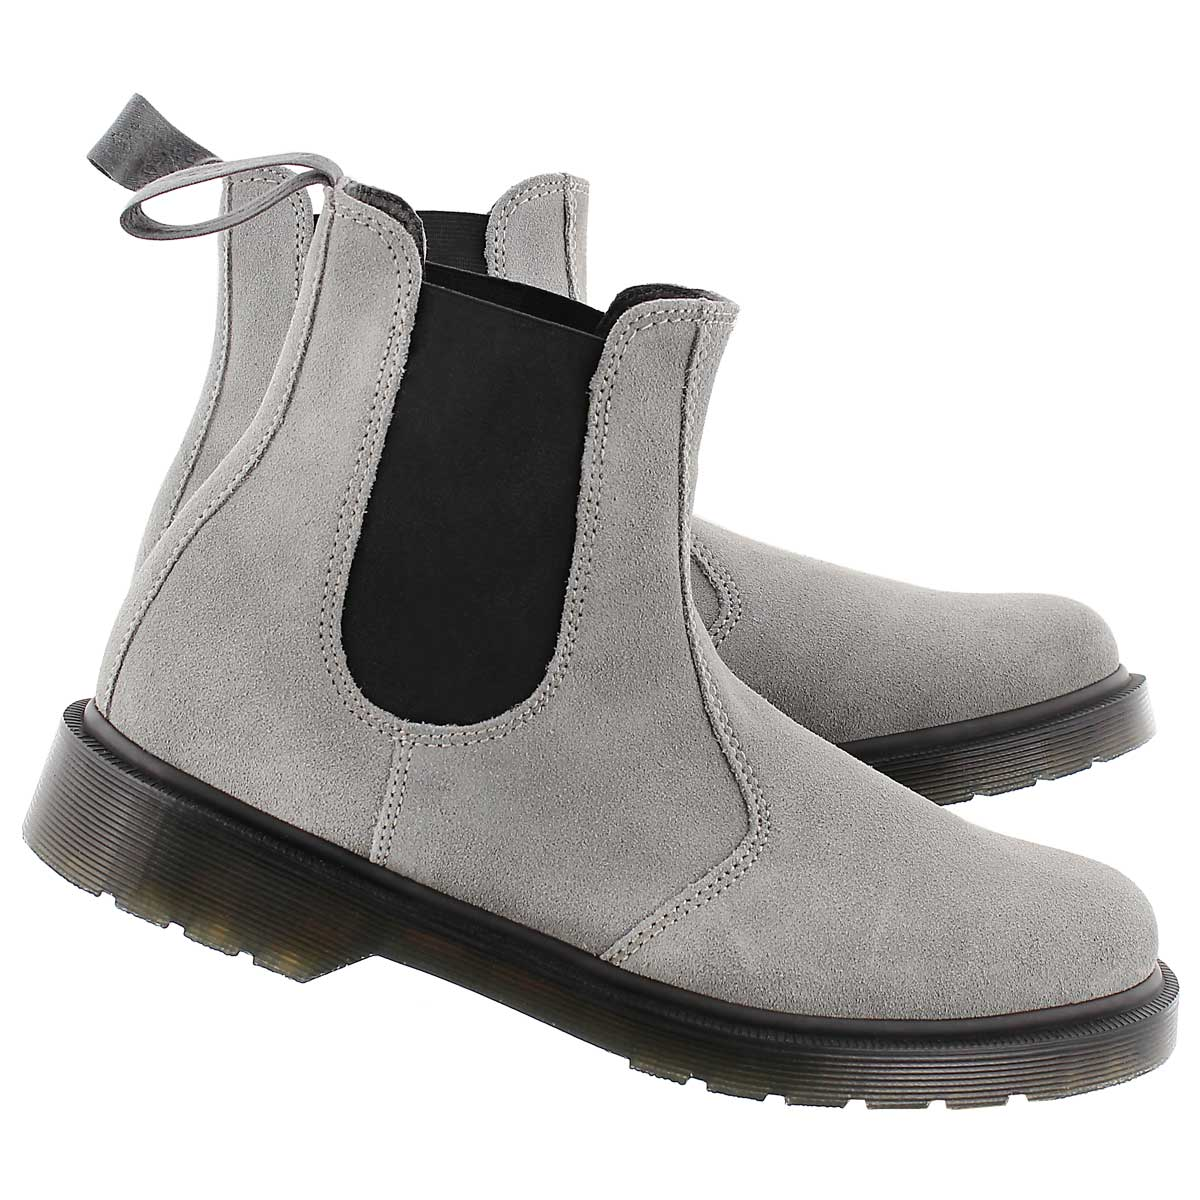 Lds 2976 grey pull on chelsea boot